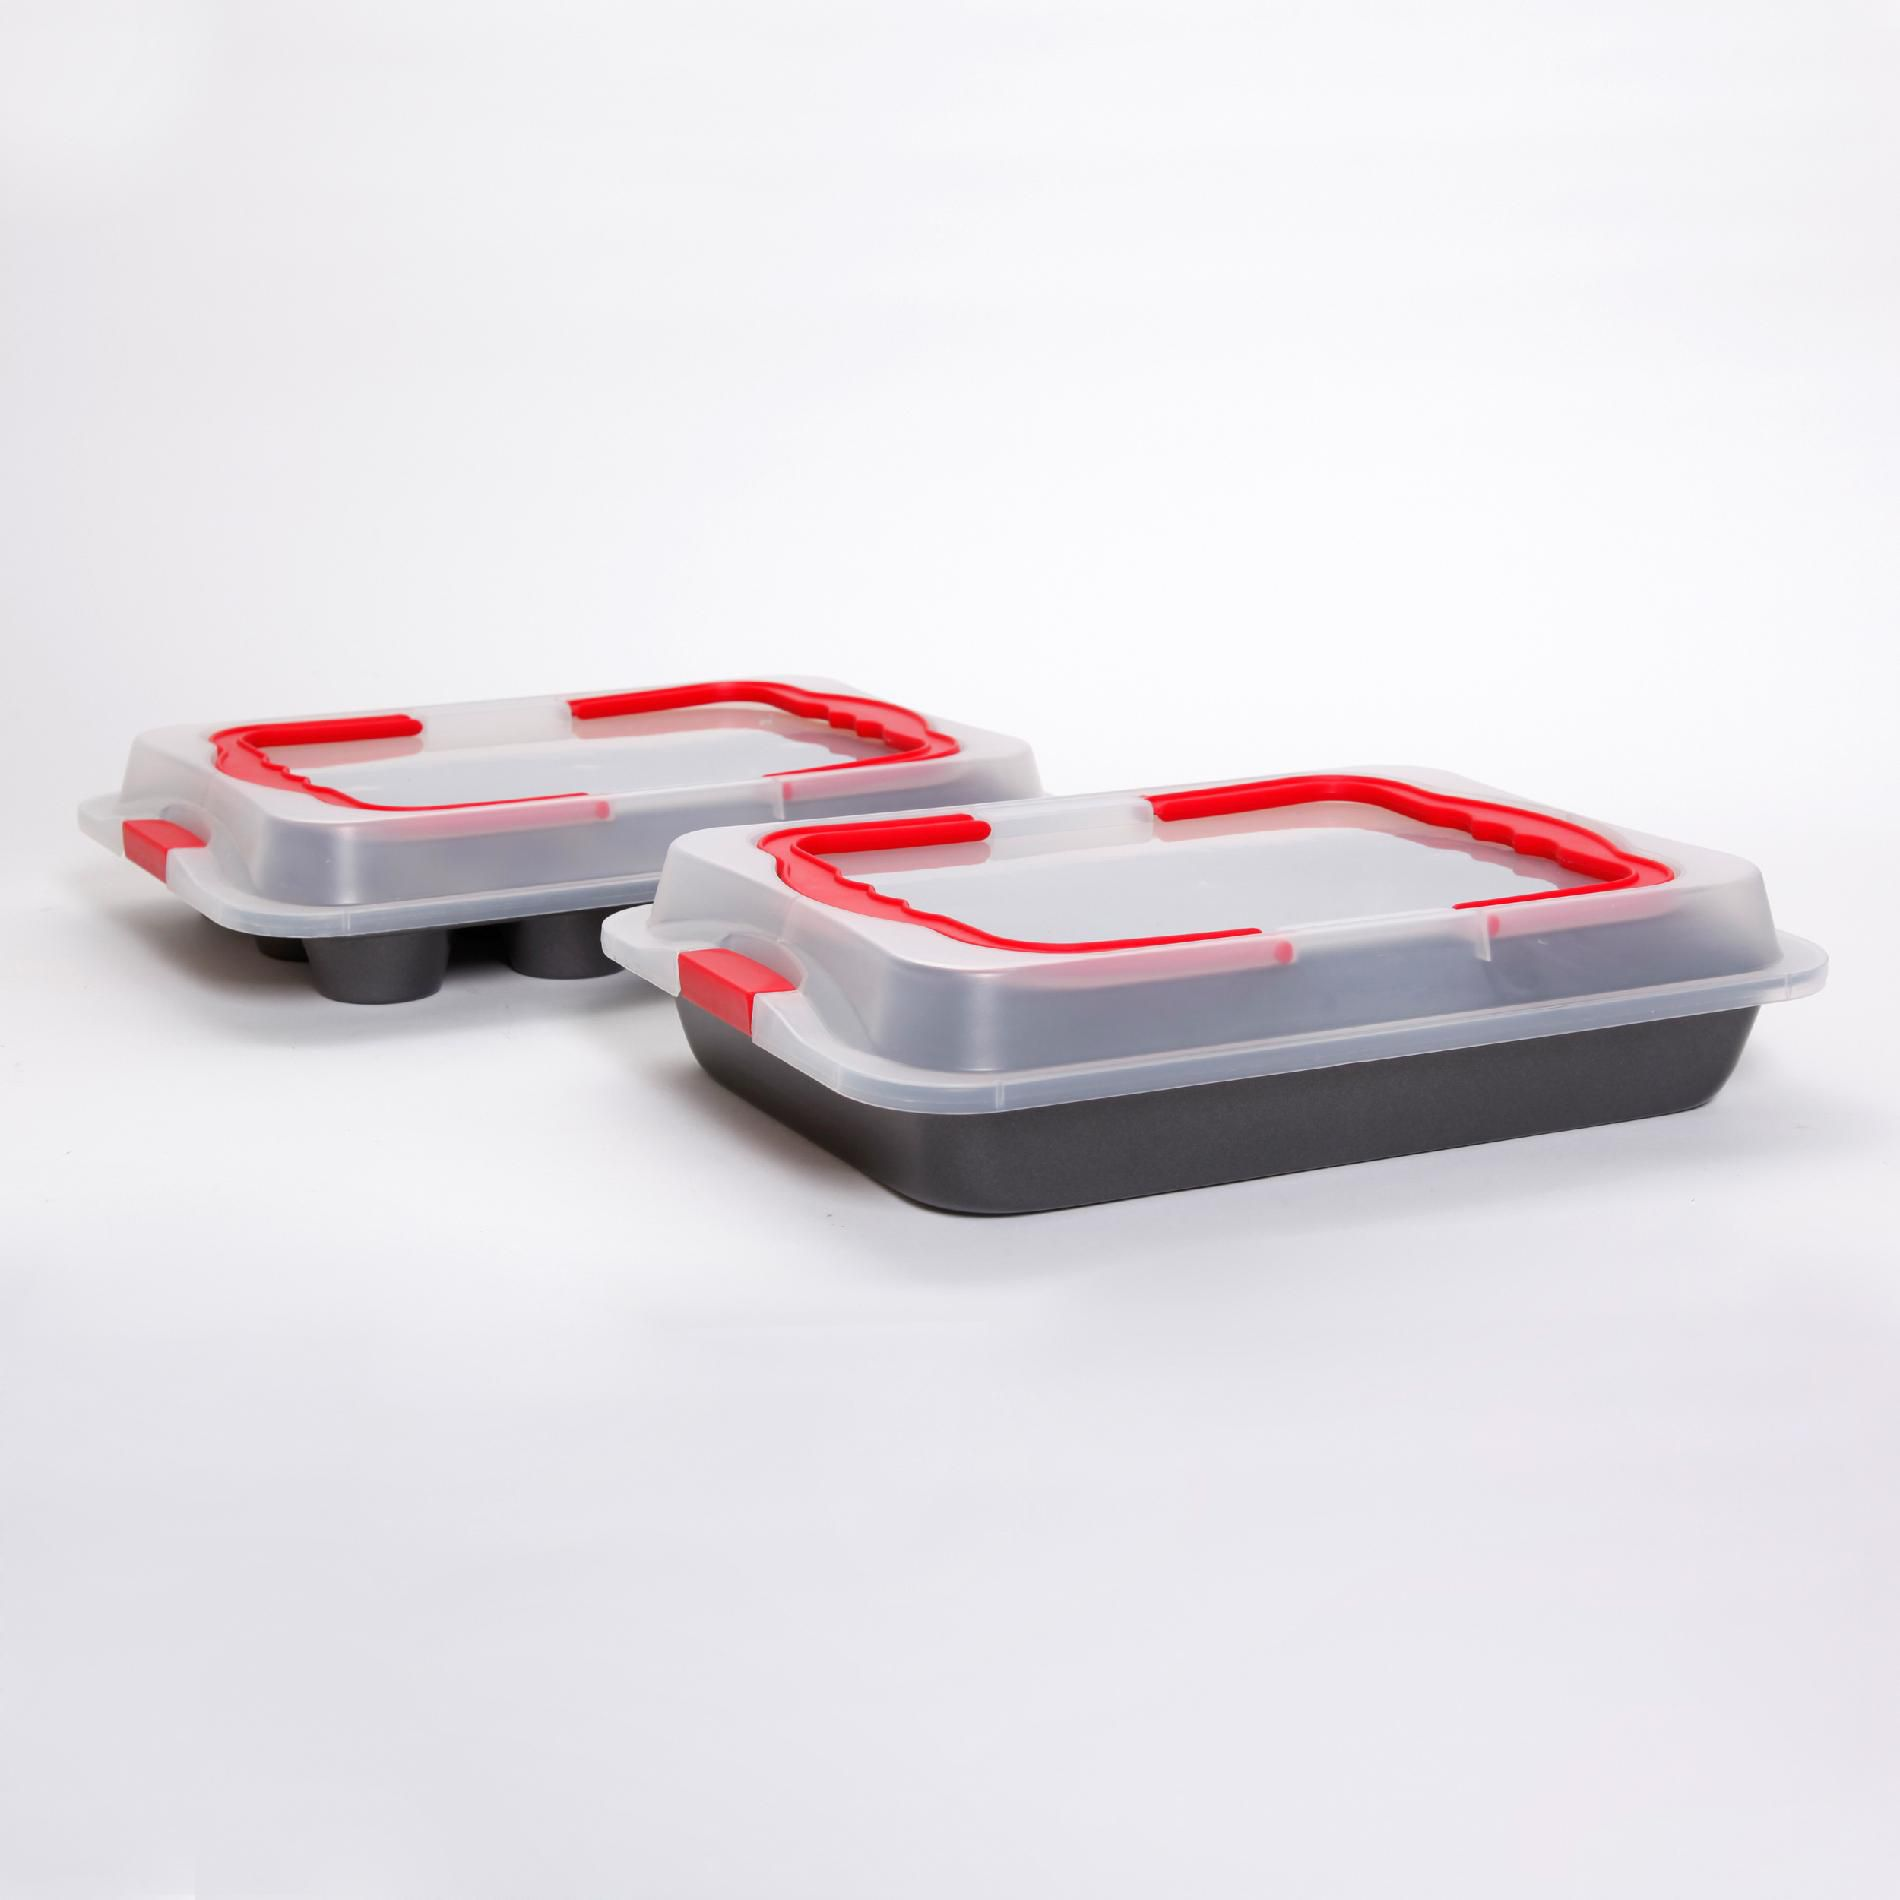 Sunbeam 4 Piece Bakeware Set